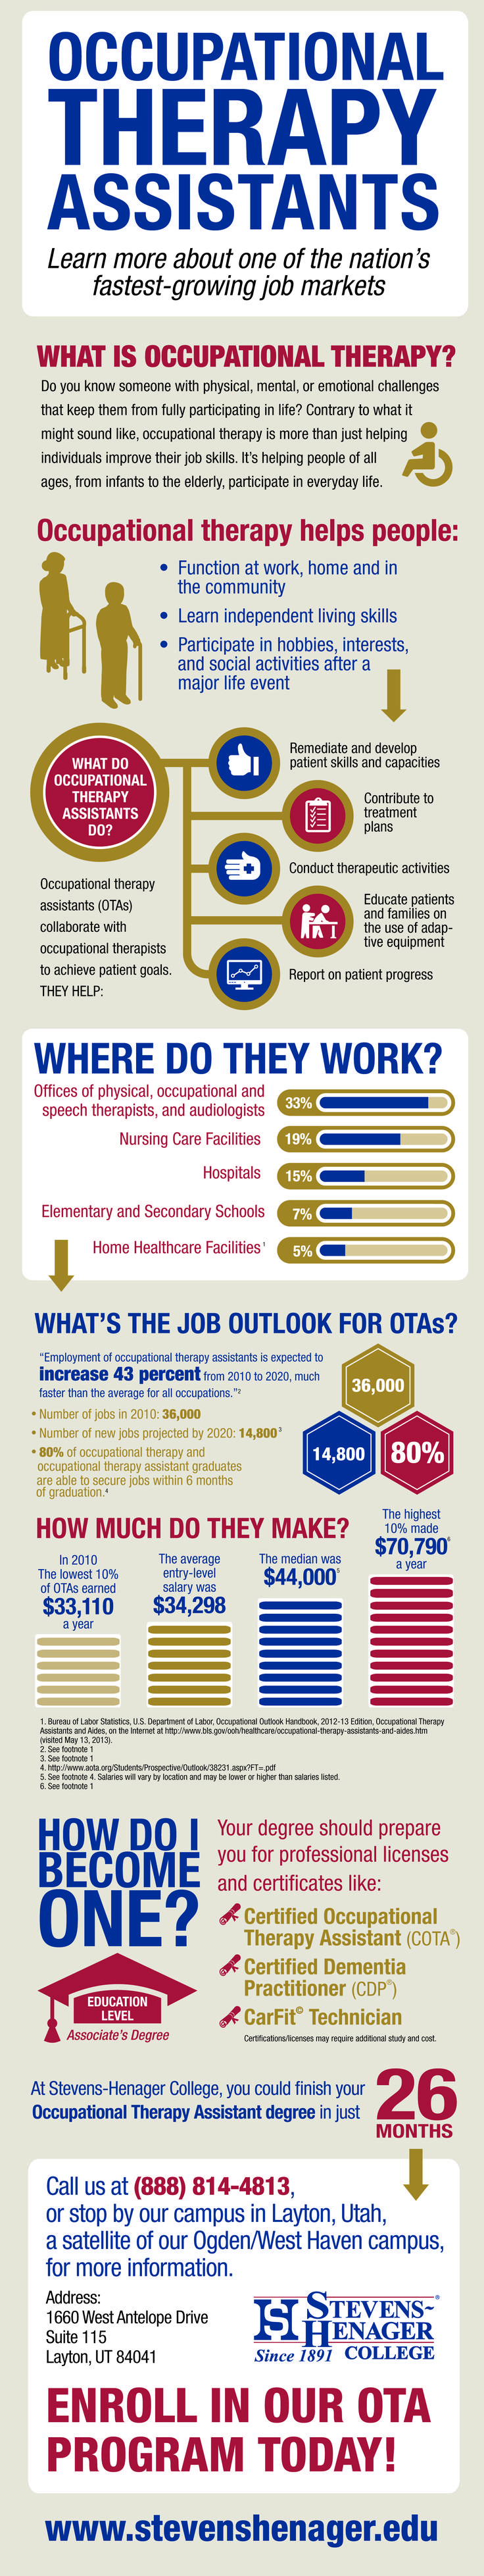 best ideas about occupational therapy assistant the what where and why of occupational therapy assistants infographic